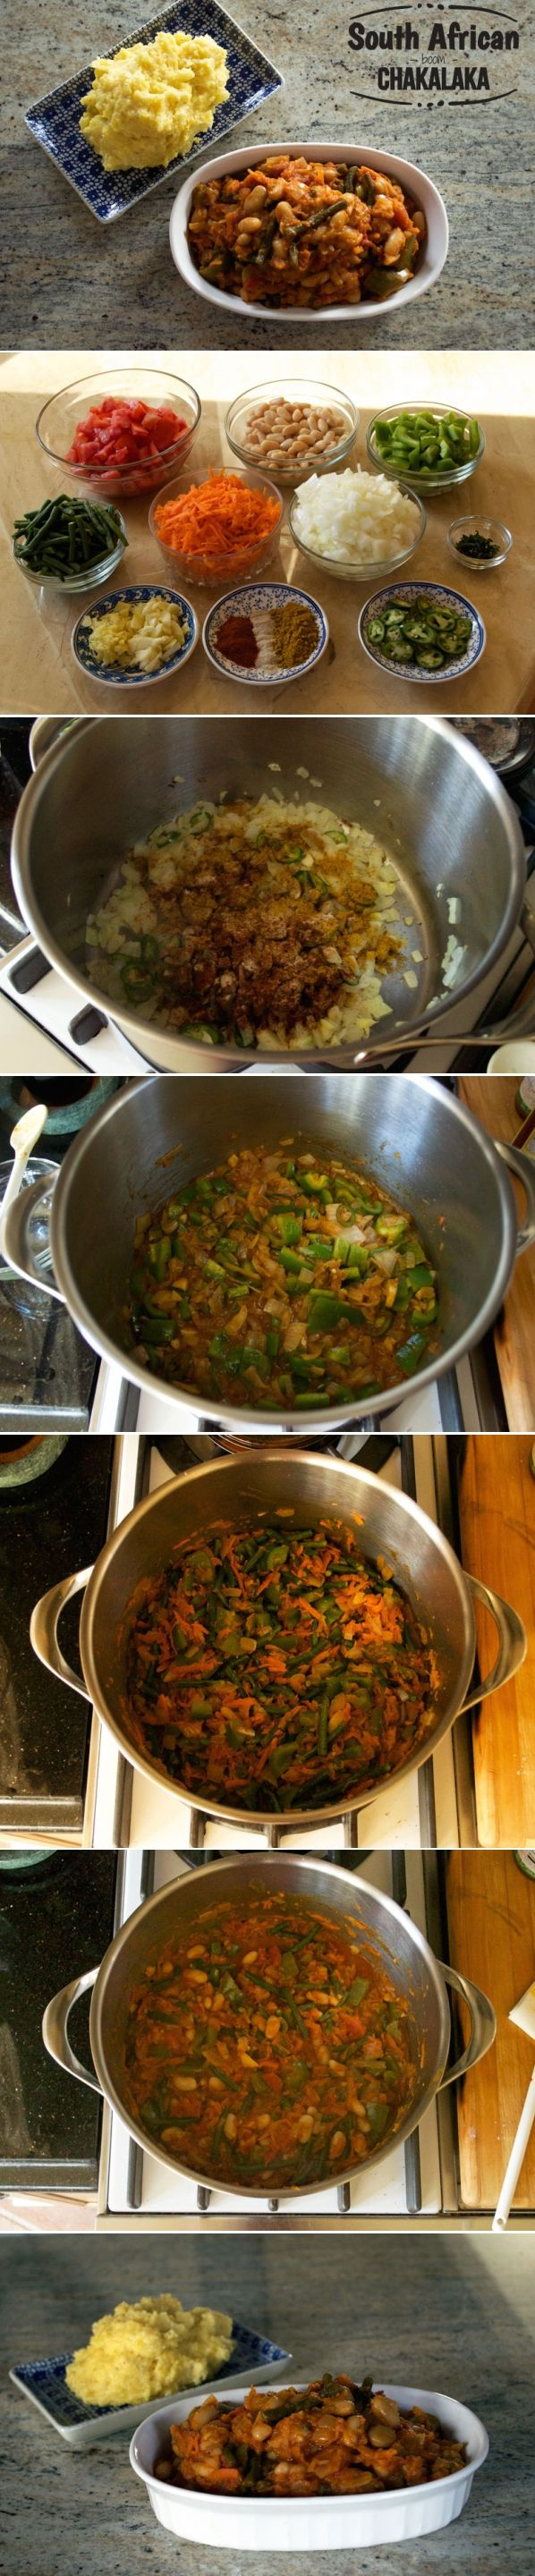 "Chakalaka is a fantastic vegetarian ""chameleon recipe."" Use it as a condiment, as a vibrant accompaniment to rice or mealiepap, or even as a standalone stew. It really is delicious every way you have it. #africanfood #vegetarian Get the recipe at arousingappetites.com/chakalaka/"